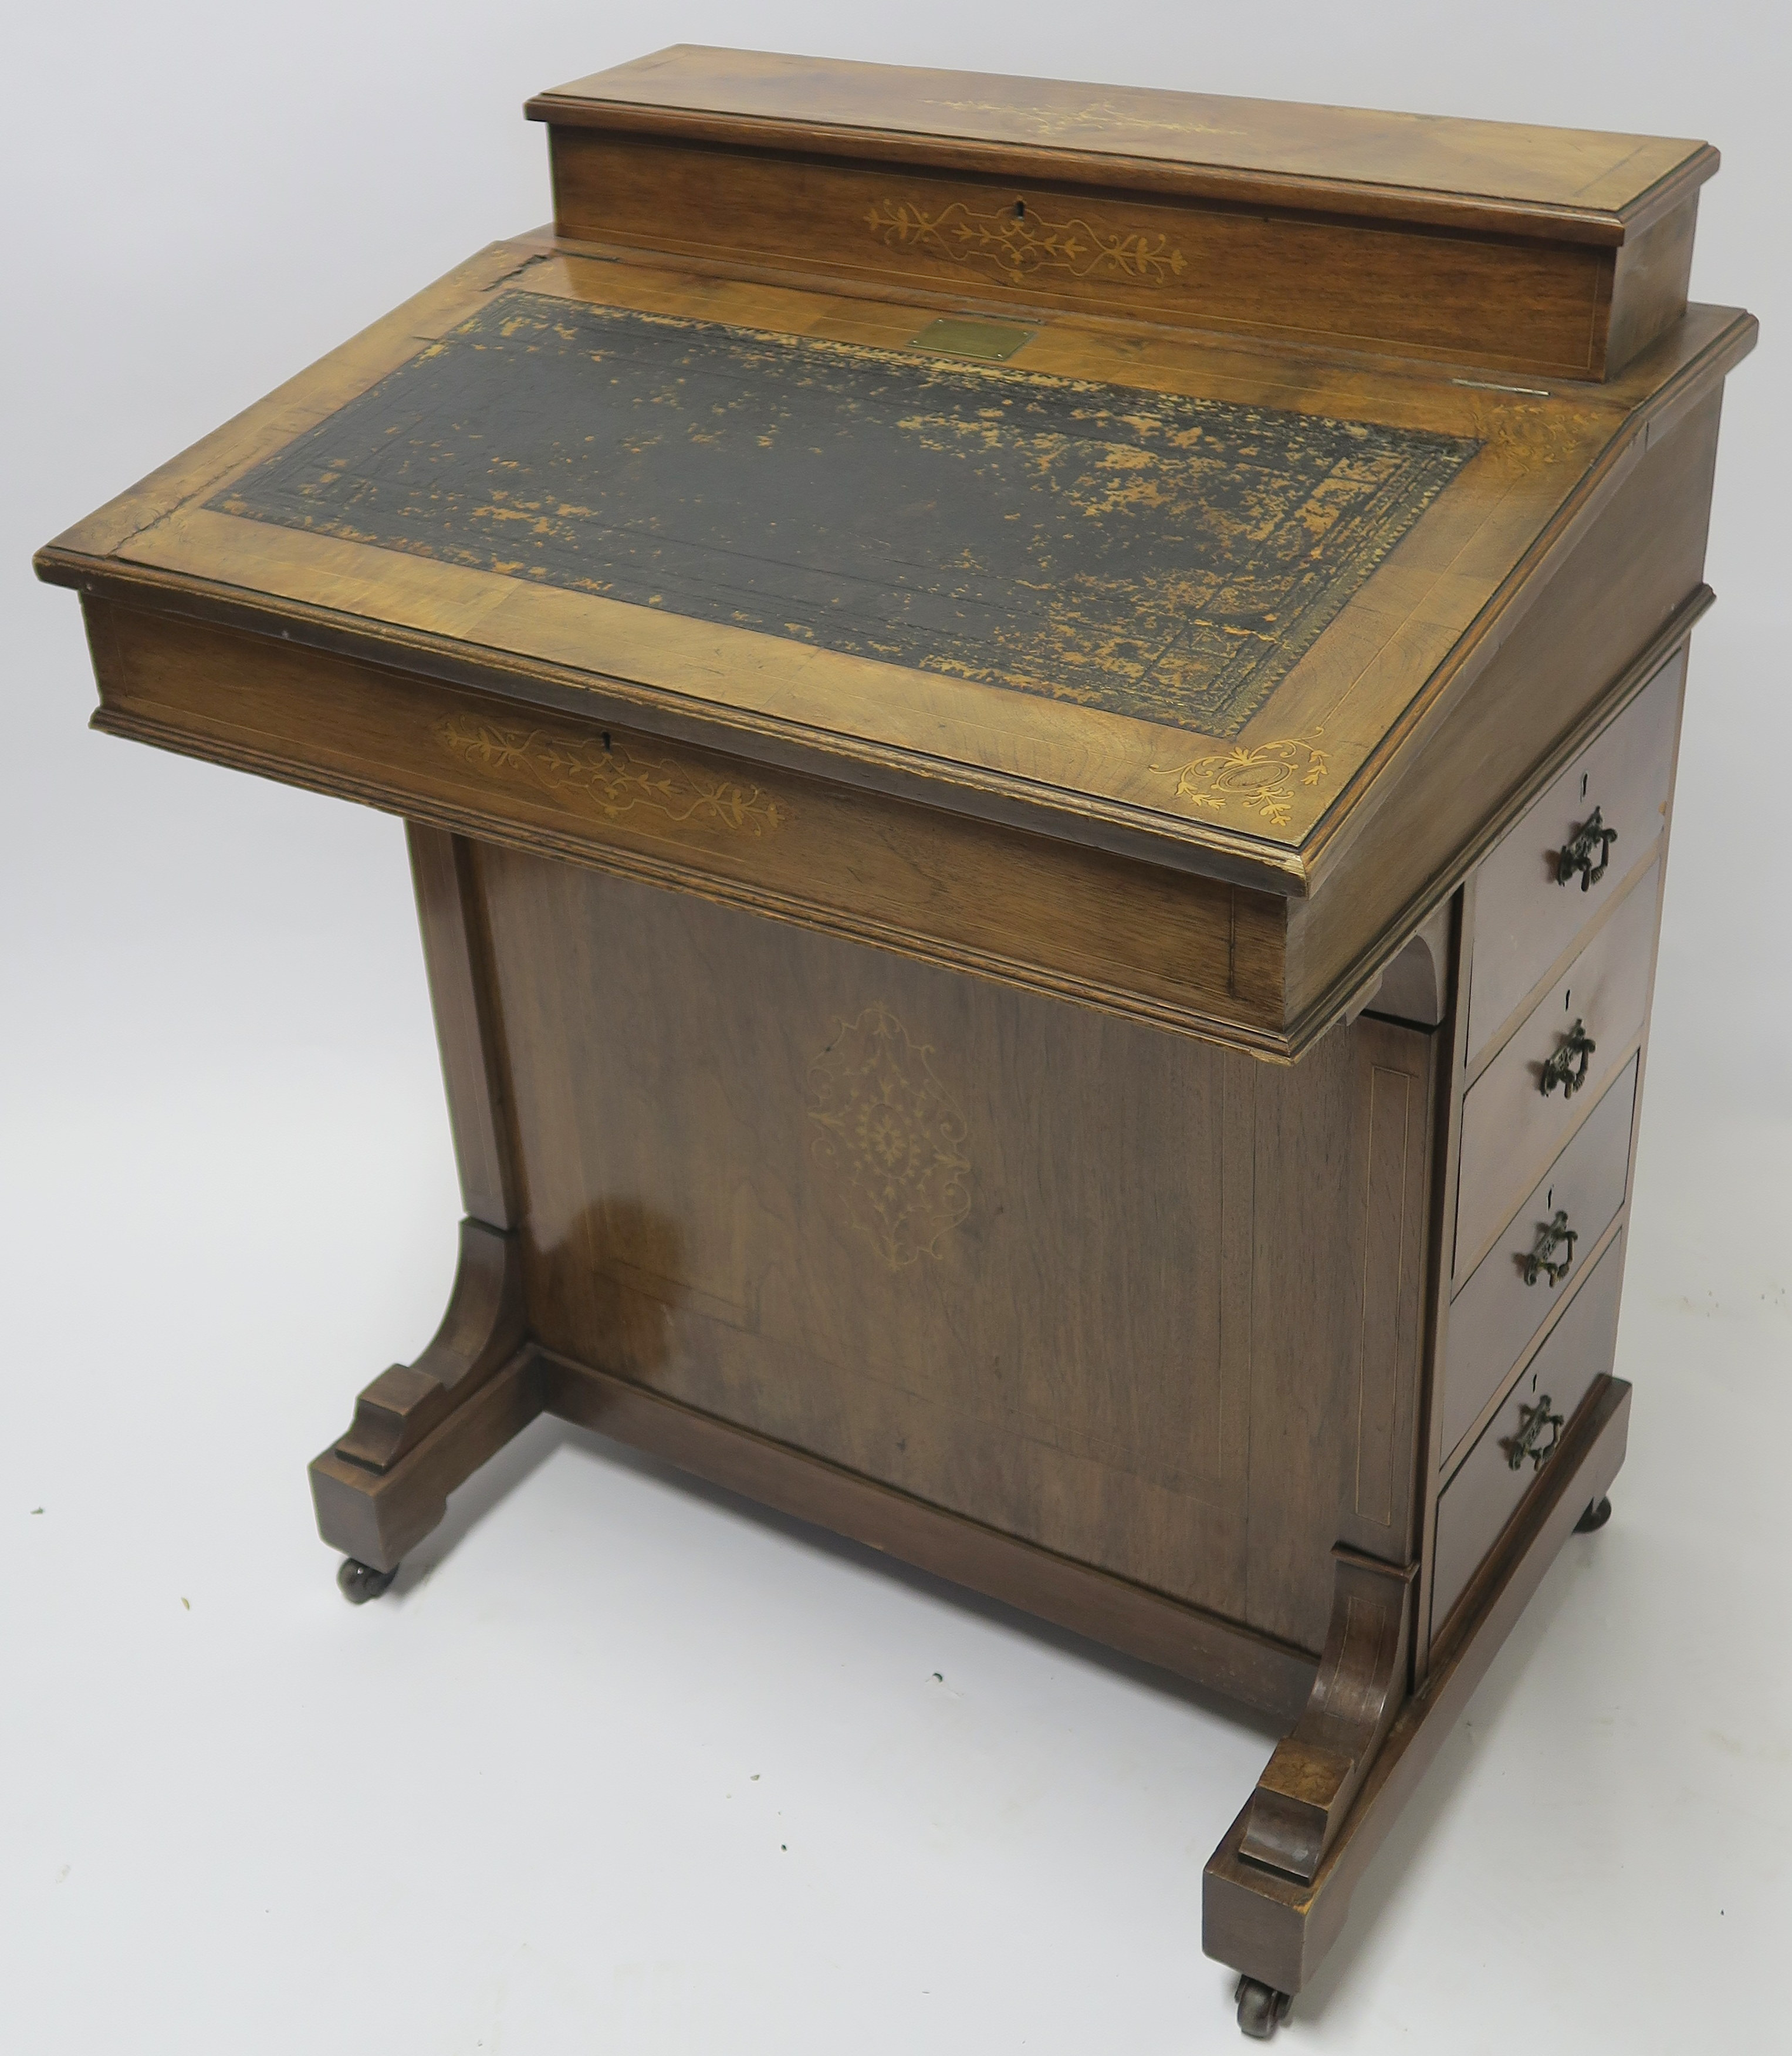 A VICTORIAN INLAID WALNUT DAVENPORT of standard design with four drawers 95cm high, 75cm wide and